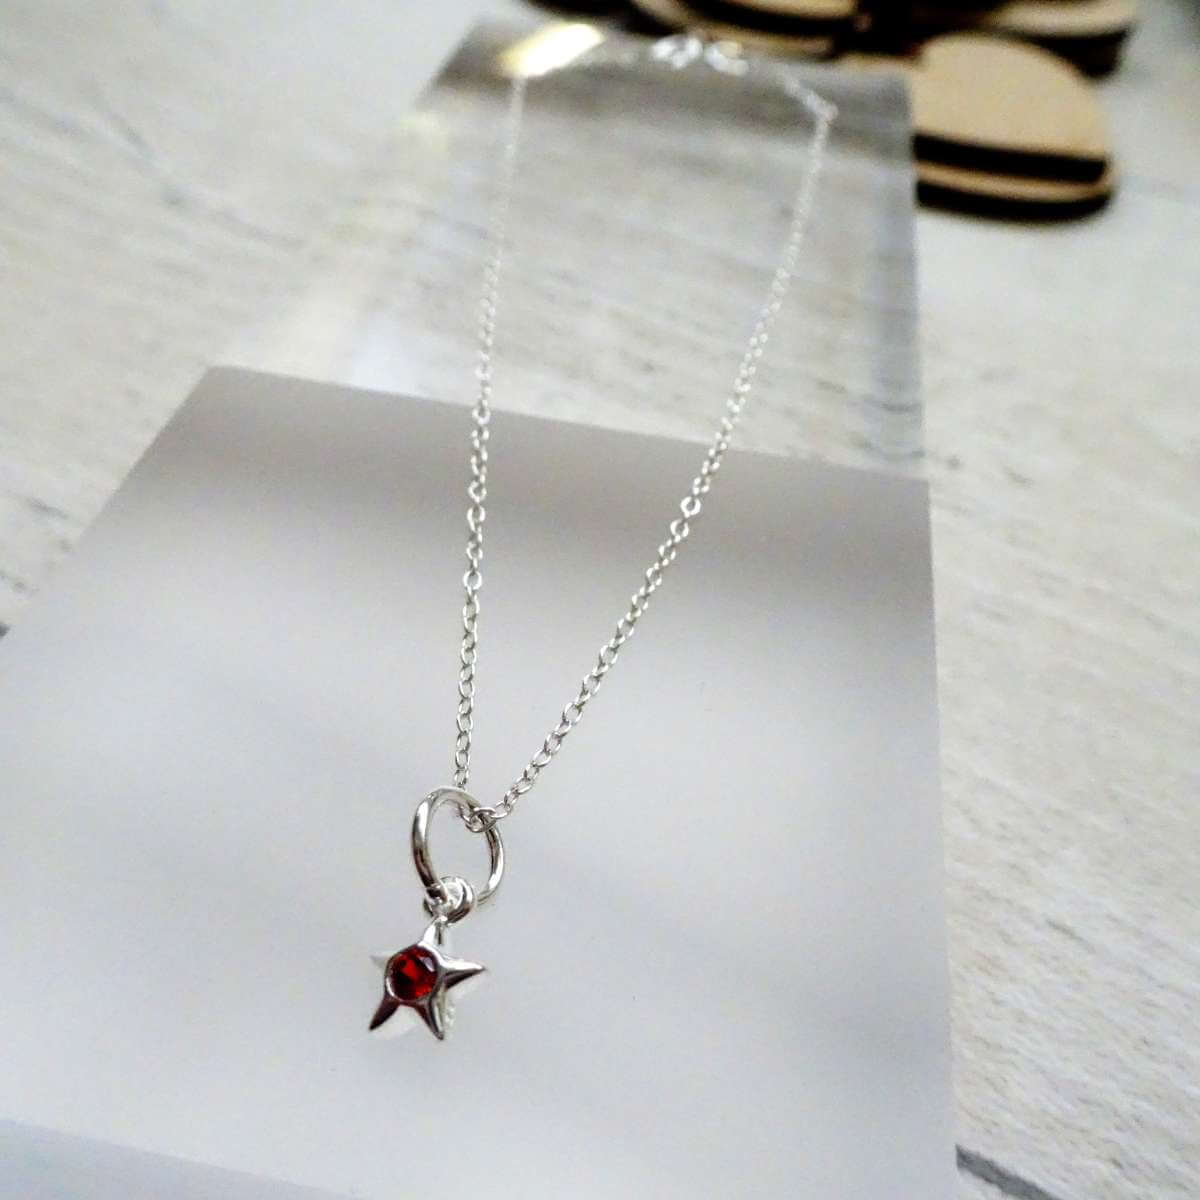 Fine Sterling Silver Belcher Anklet with CZ Crystal January Birthstone Star Charm - 10 Inches